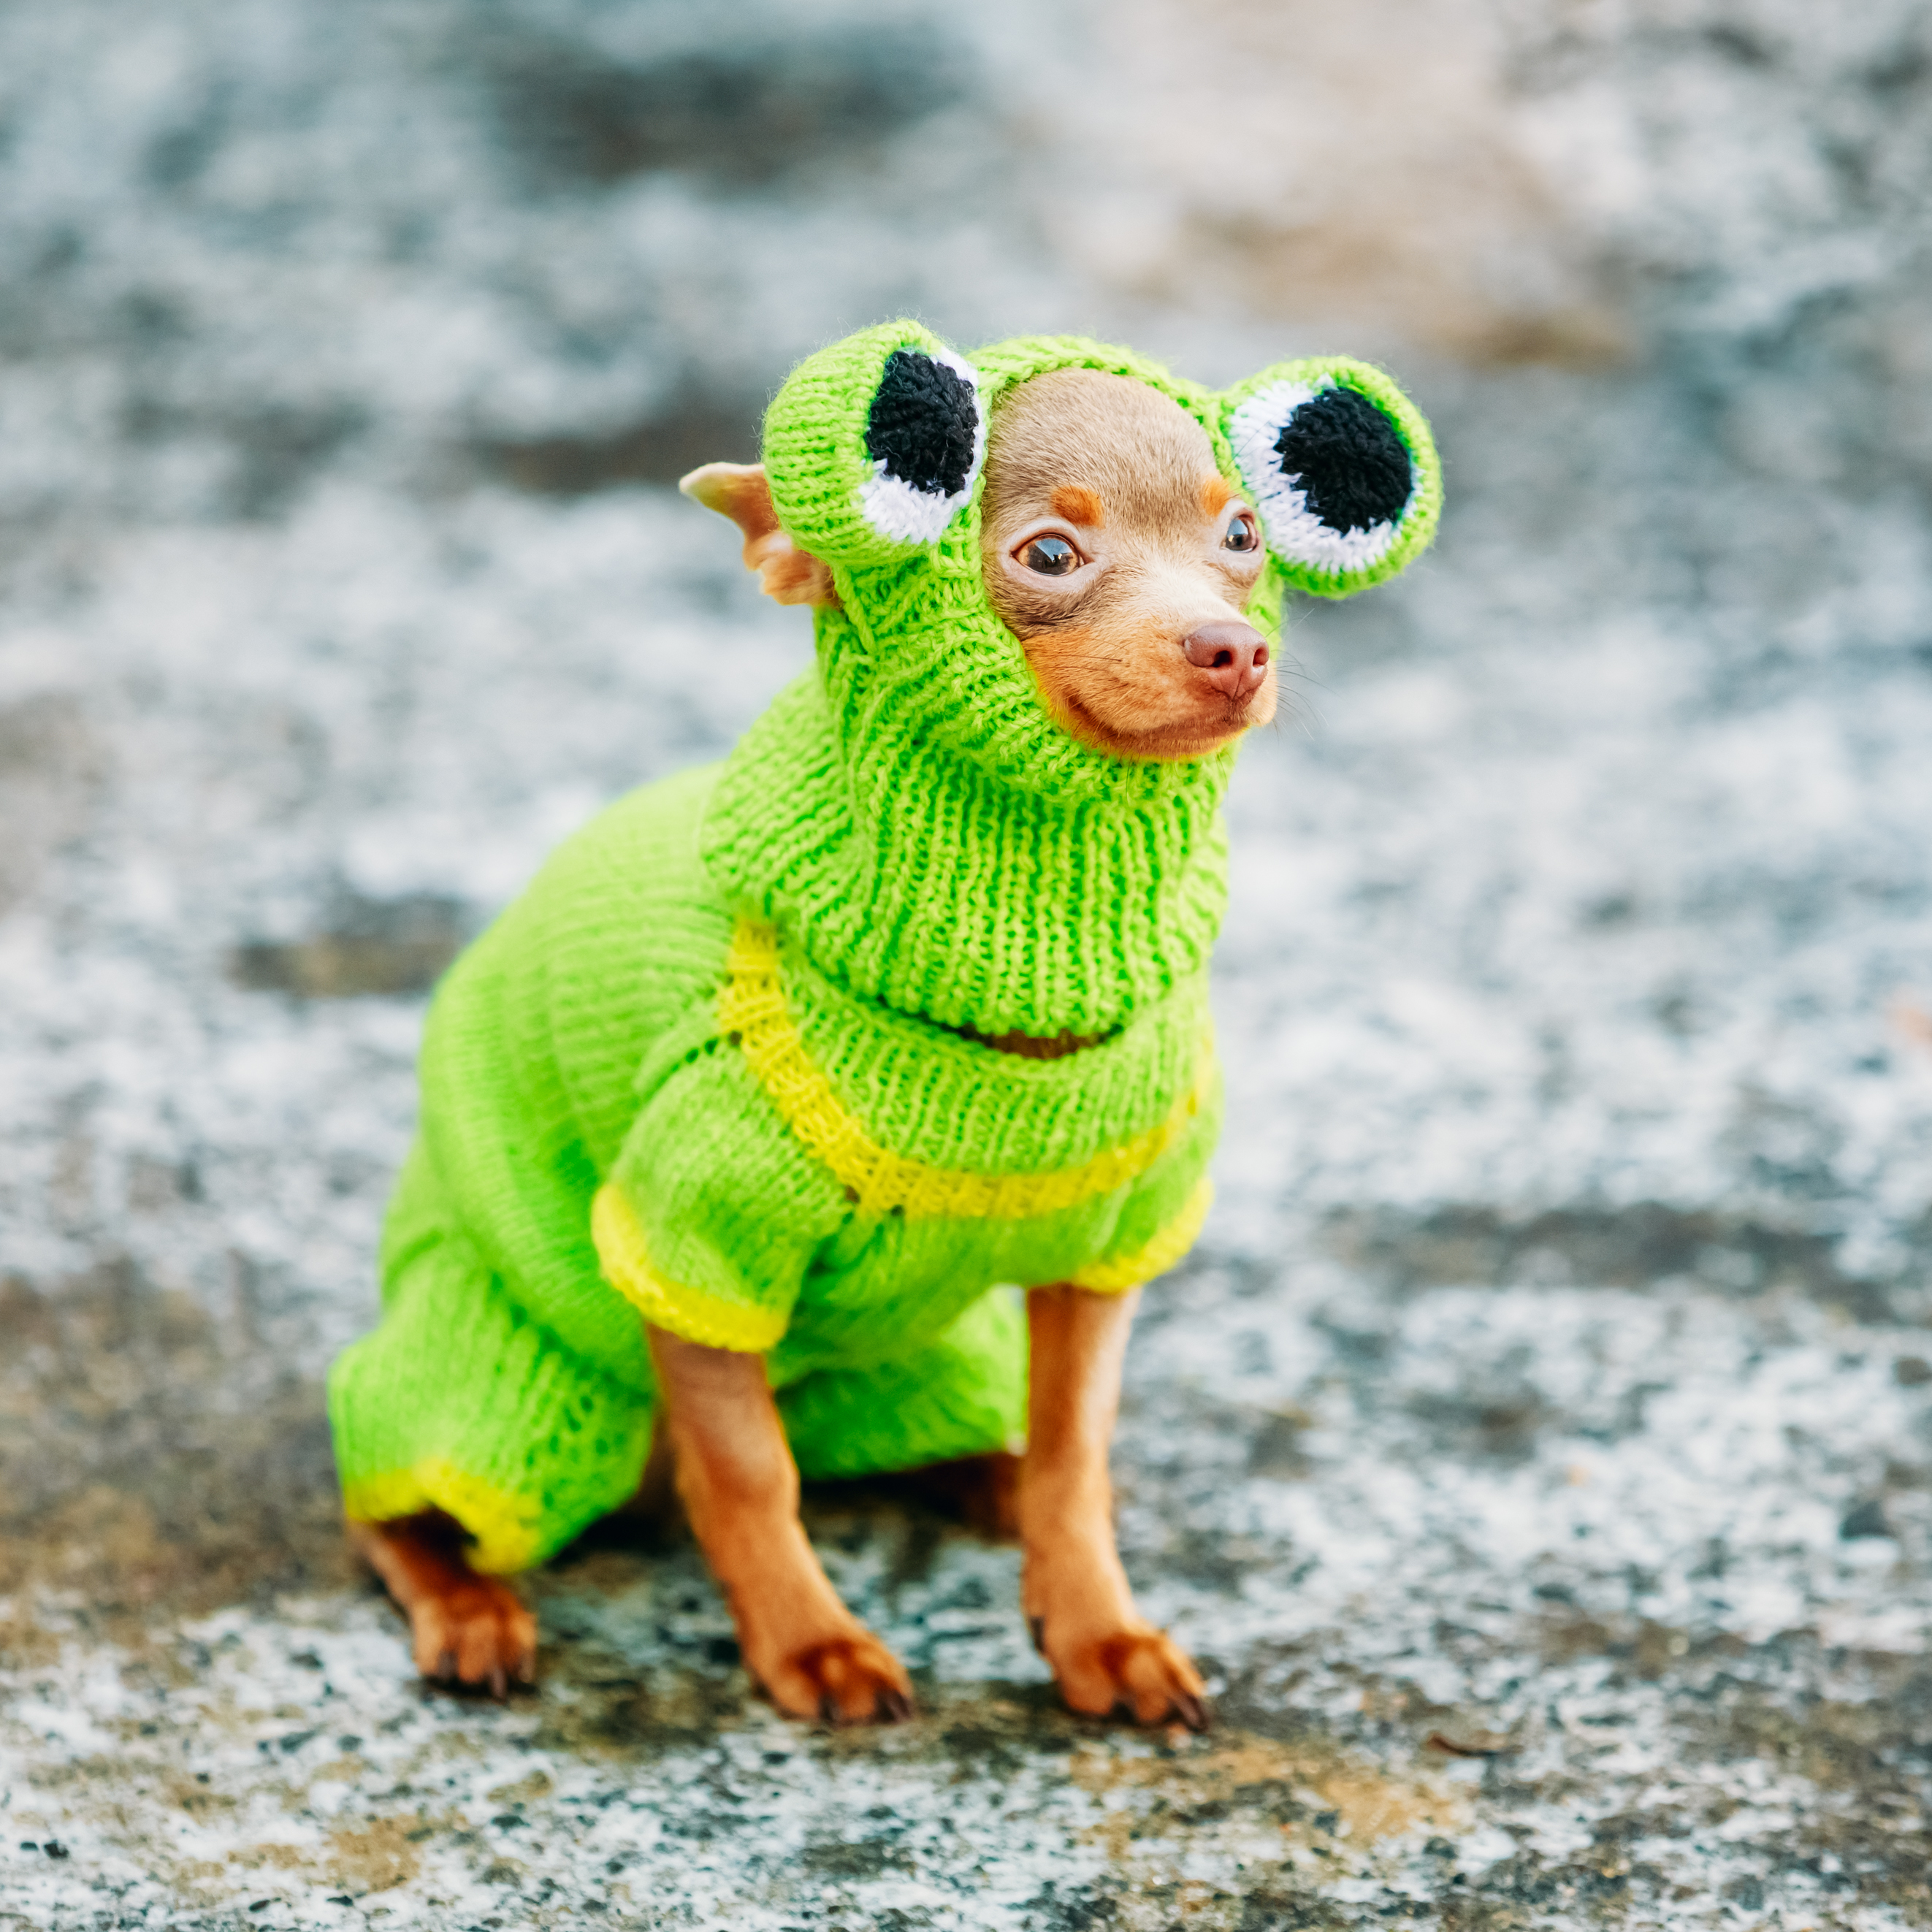 A small dog wearing a green coat